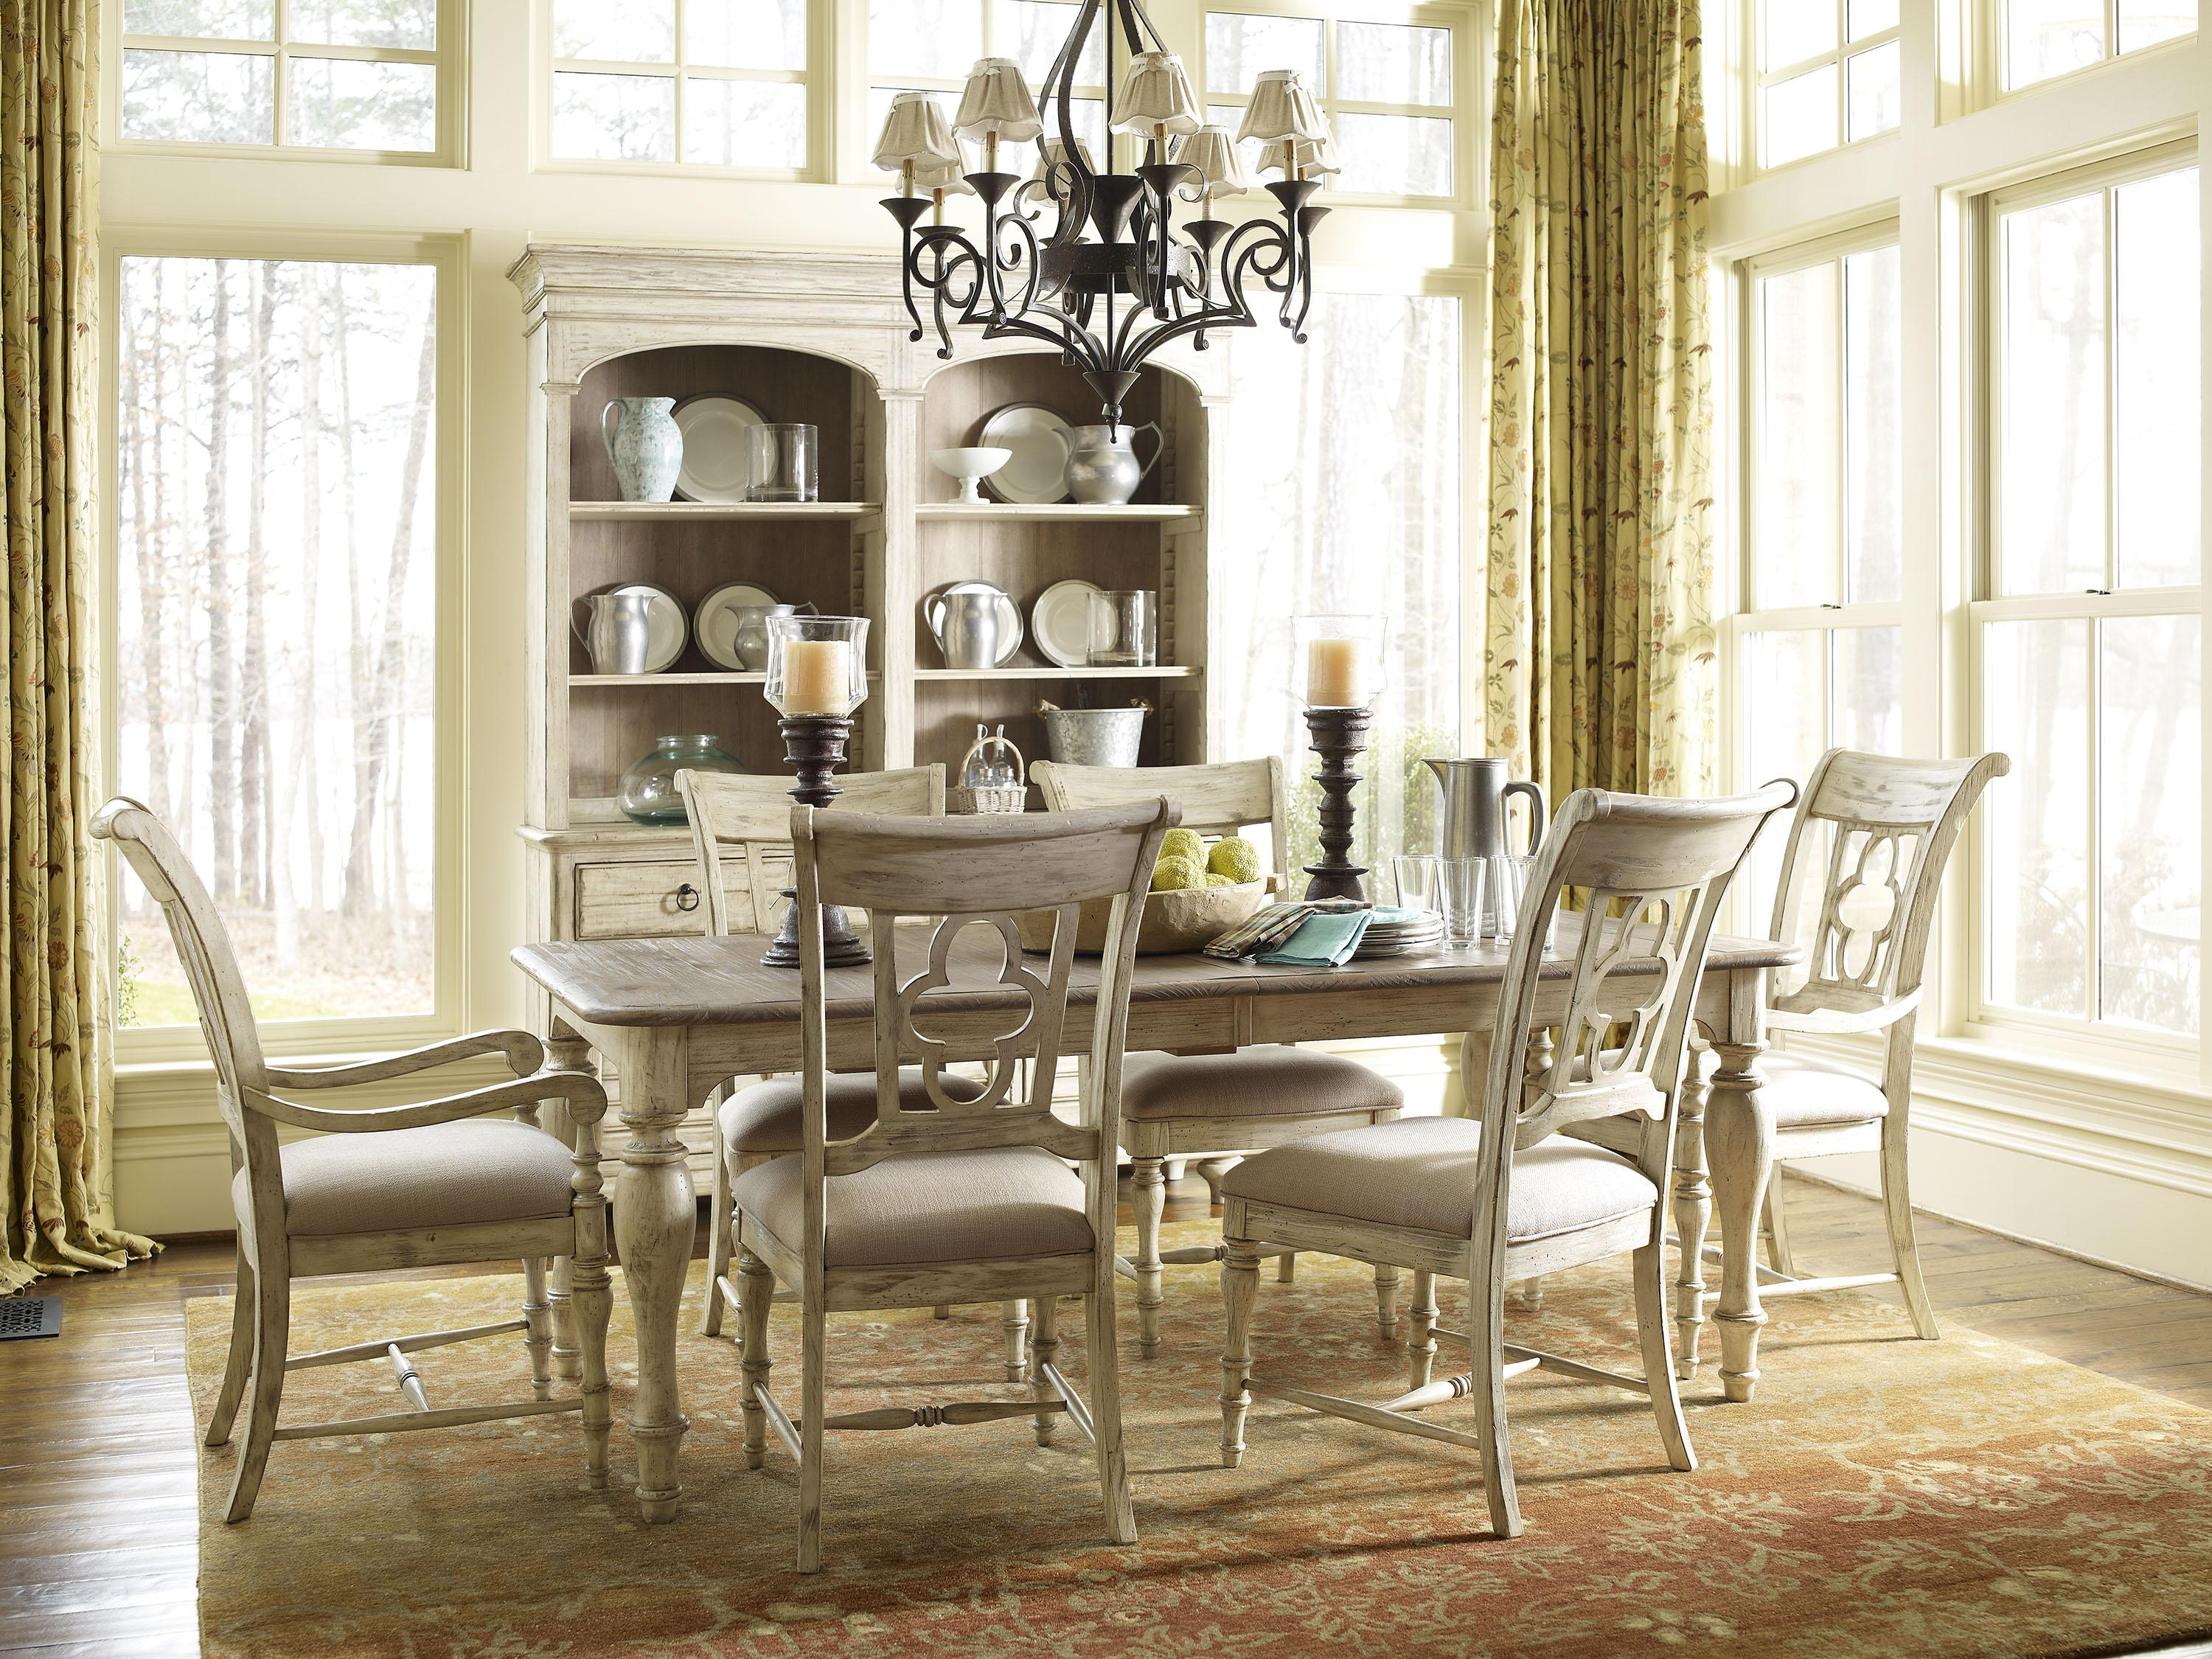 Kincaid Furniture Weatherford Formal Dining Room Group 1 - Wayside ...